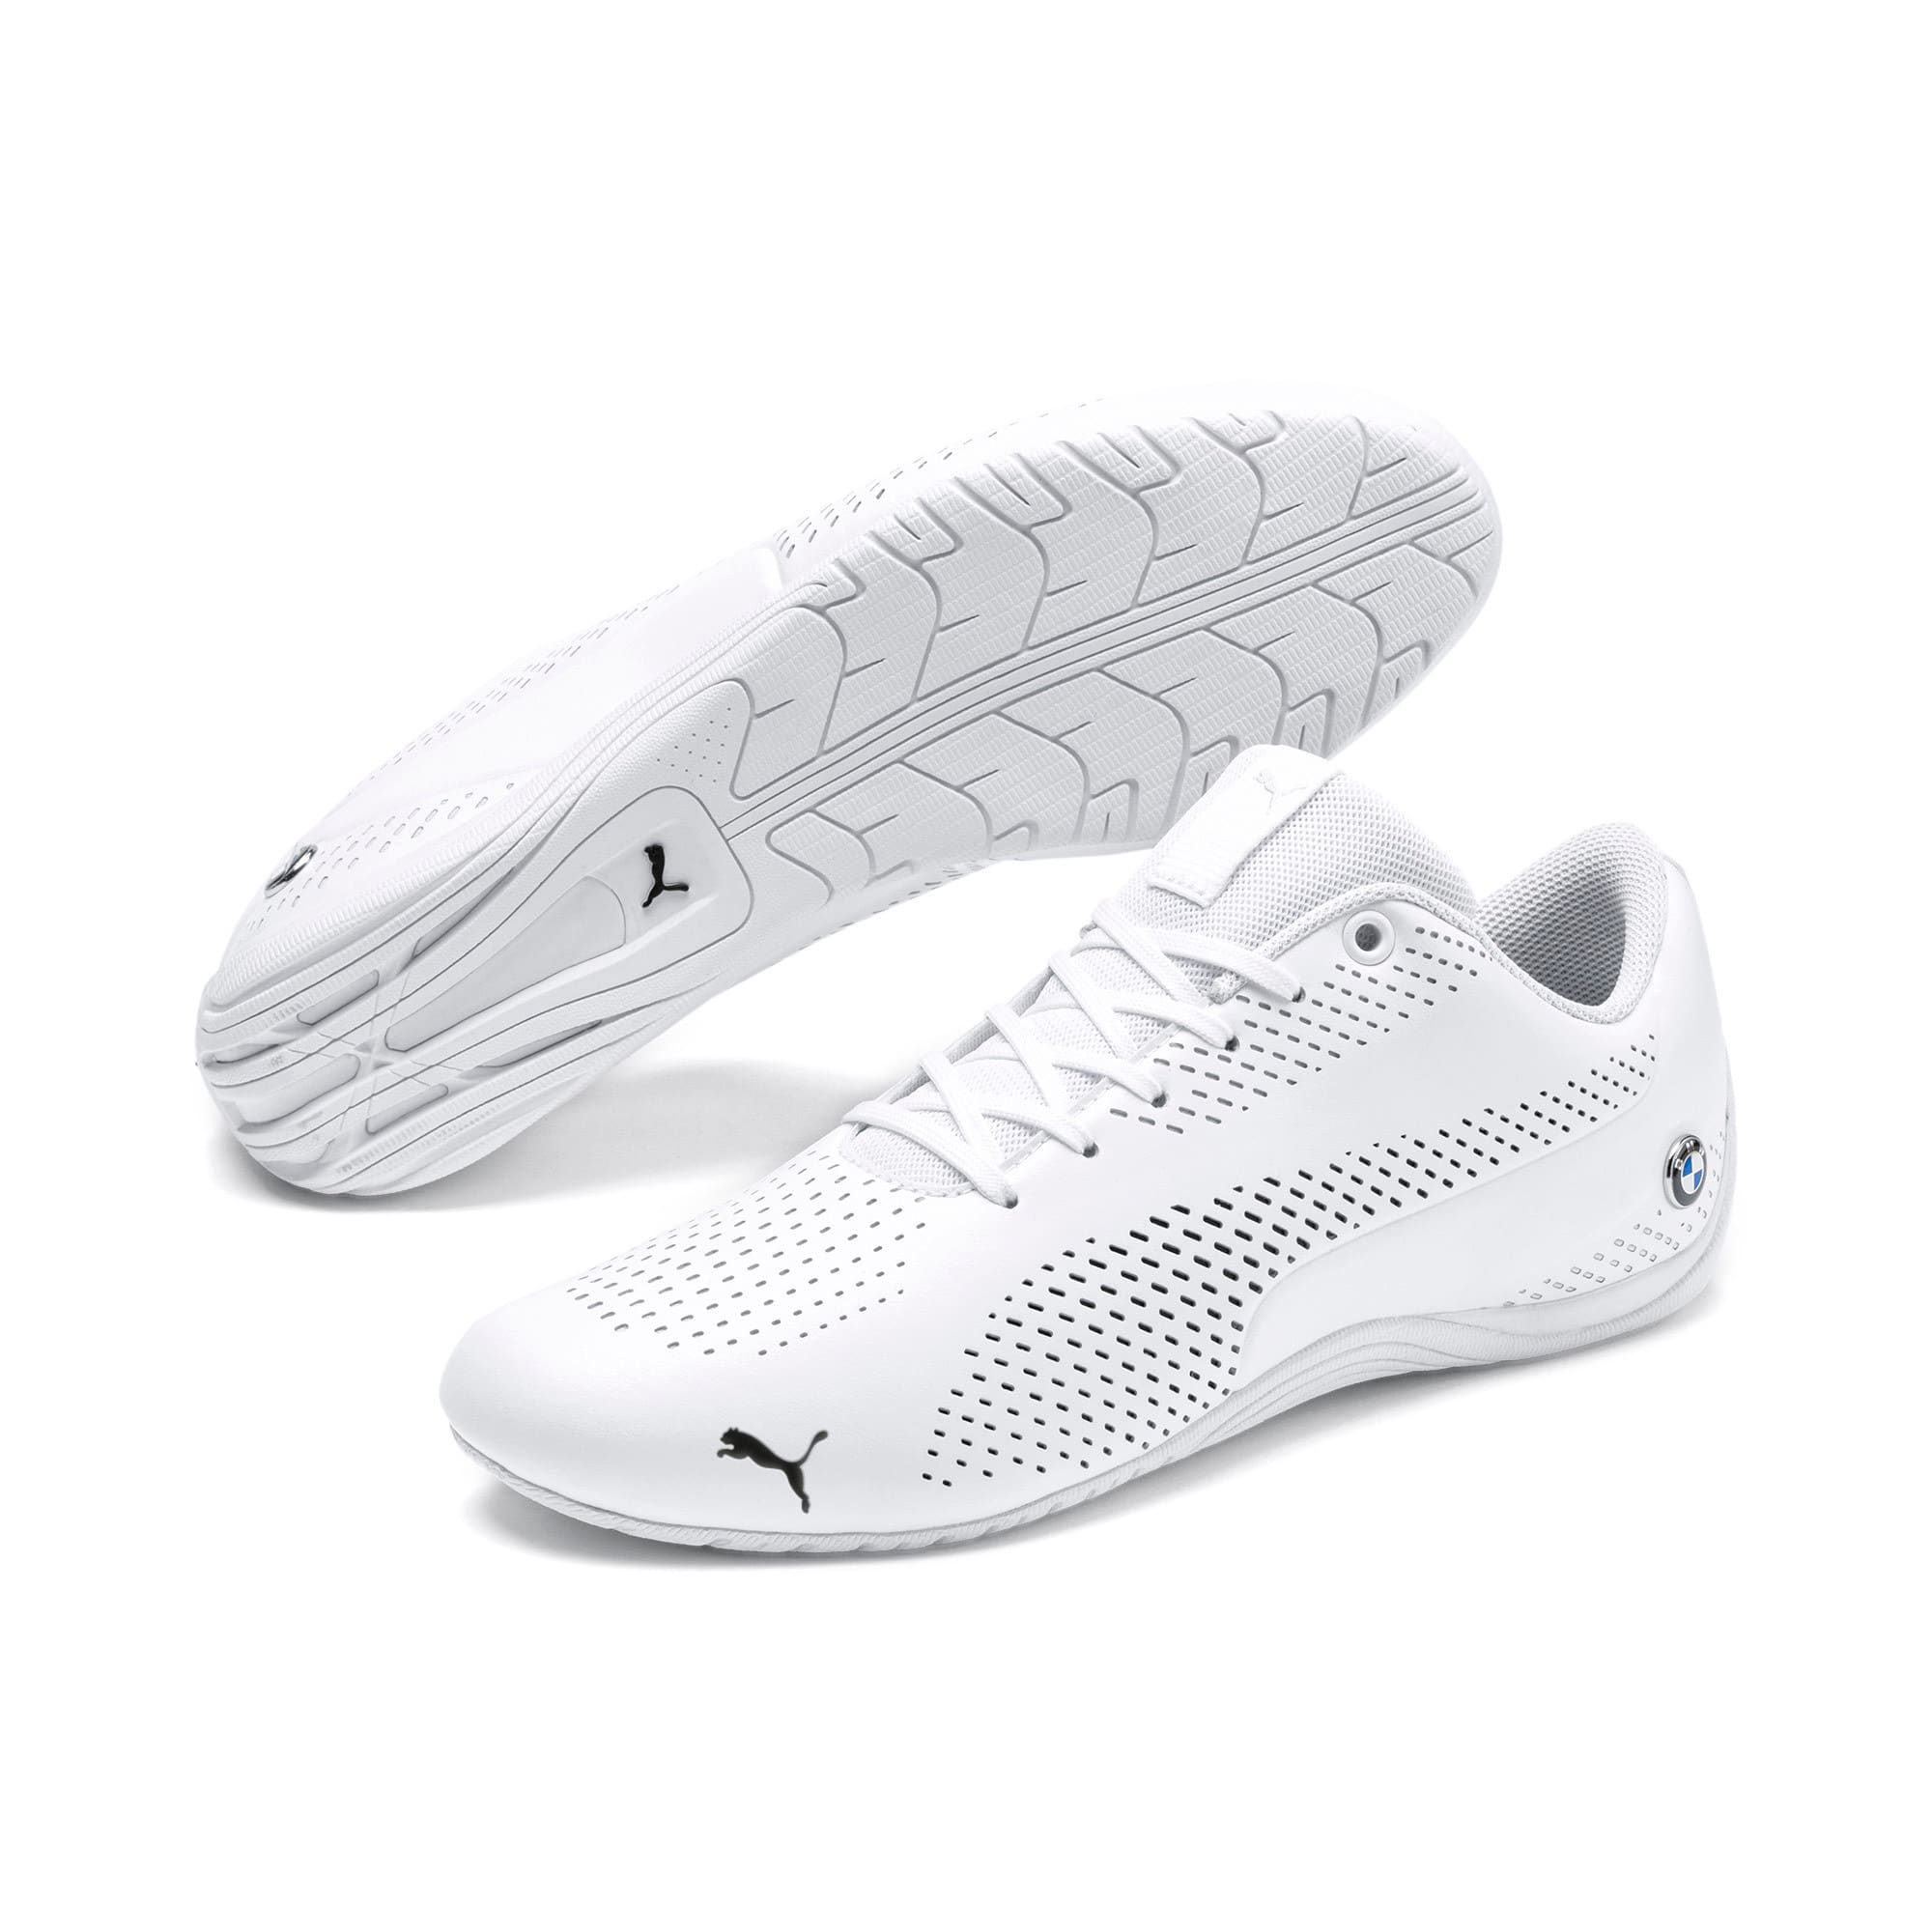 Thumbnail 2 of Scarpe BMW M Motorsport Drift Cat Ultra 5 II, Puma White-Puma Black, medium